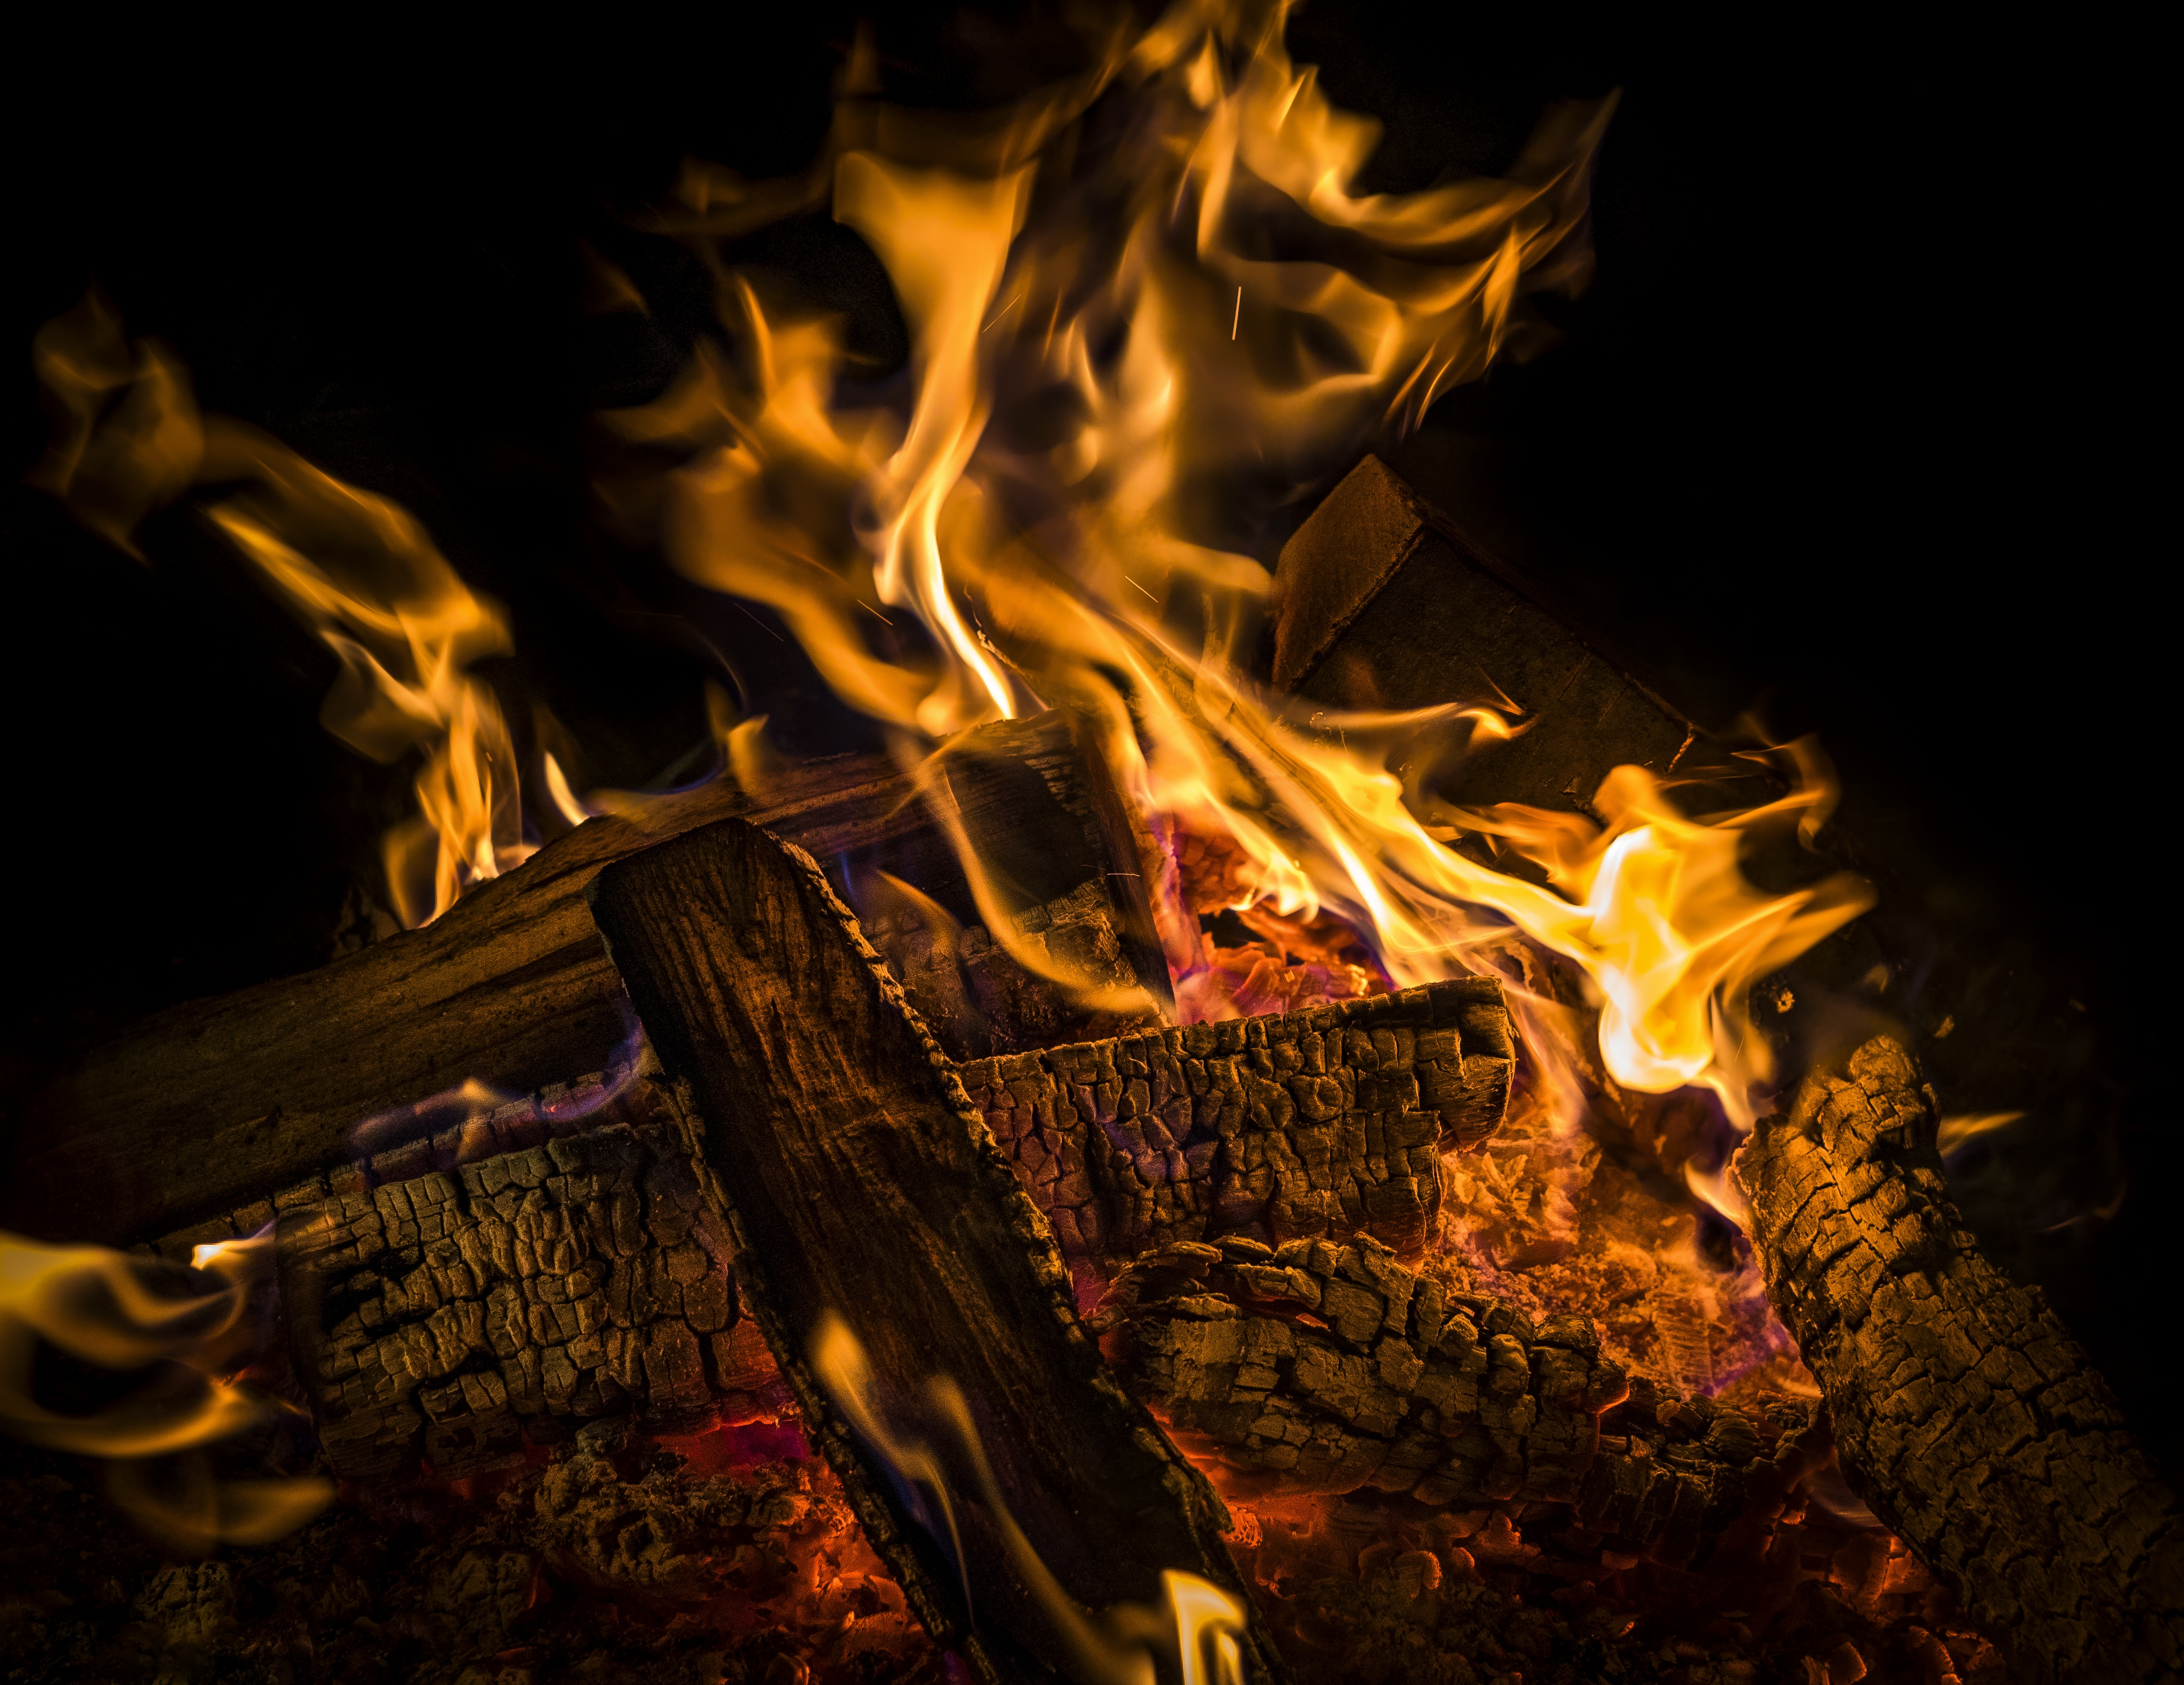 130441 download wallpaper Miscellanea, Bonfire, Coals, Miscellaneous, Firewood, Ash screensavers and pictures for free